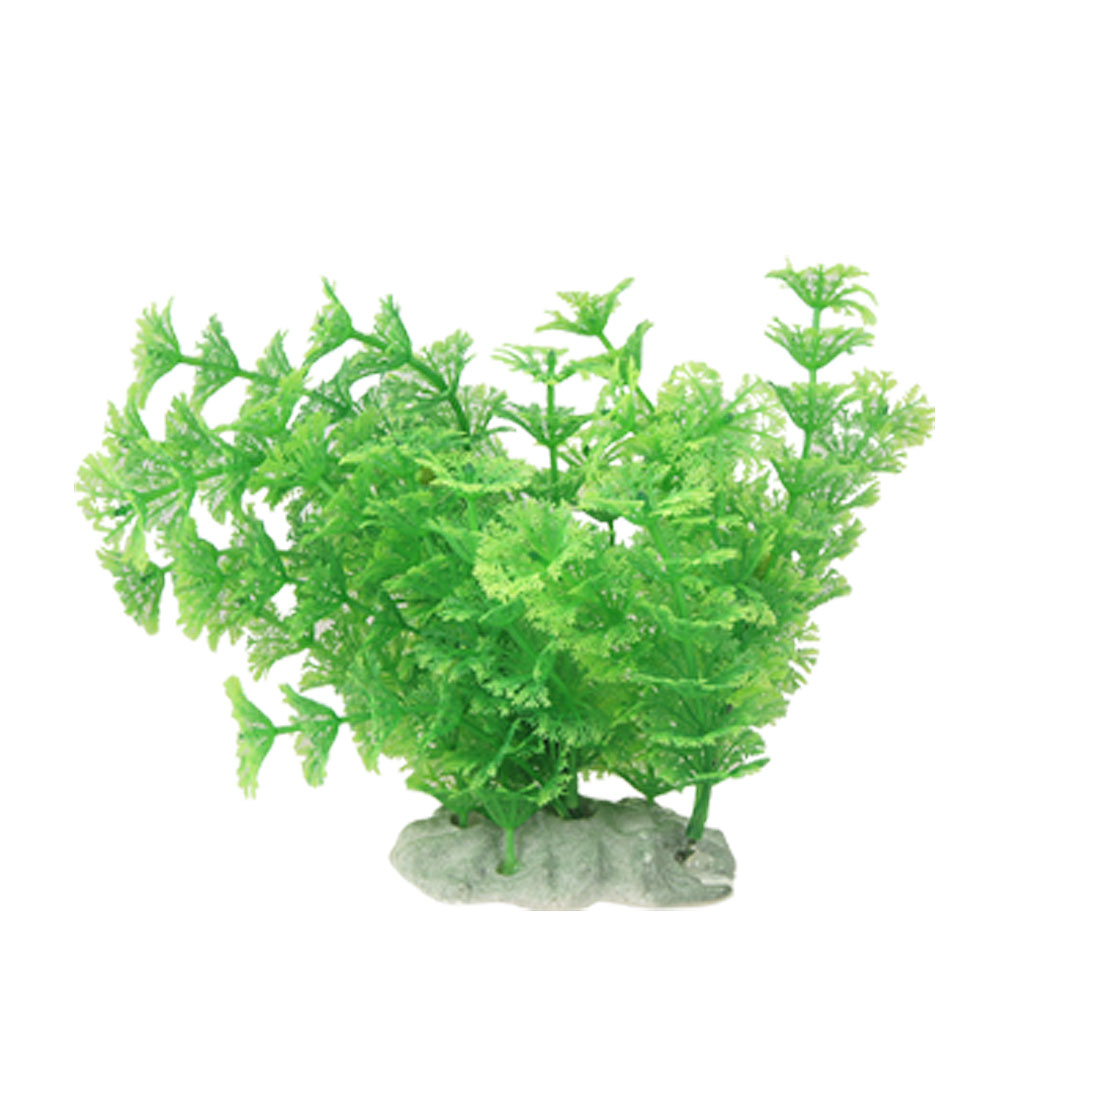 Fish Tank Green Emulational Plastic Ornament Water Grass